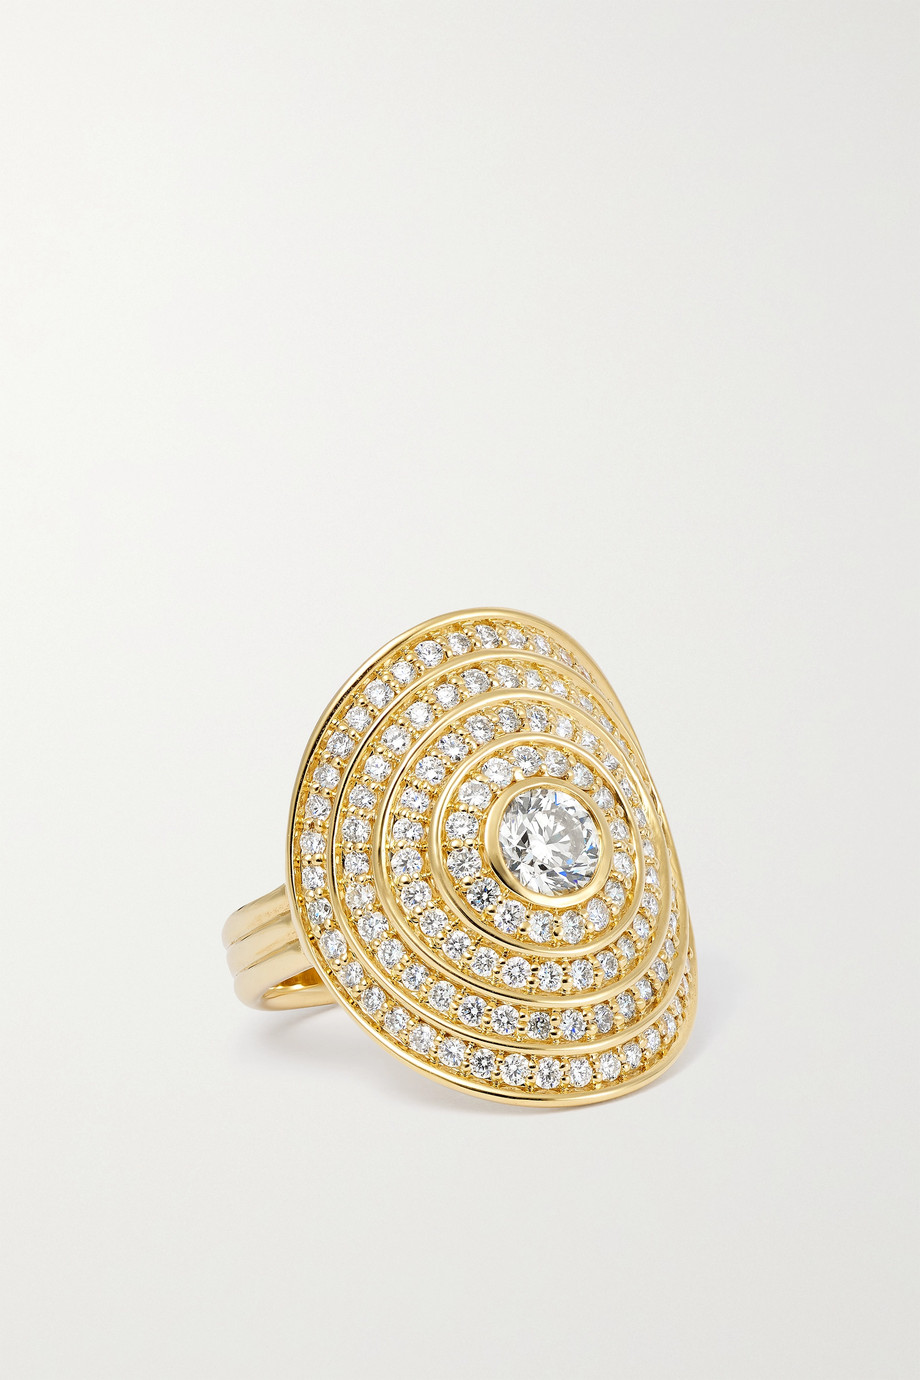 ALMASIKA Universum 18-karat gold diamond ring